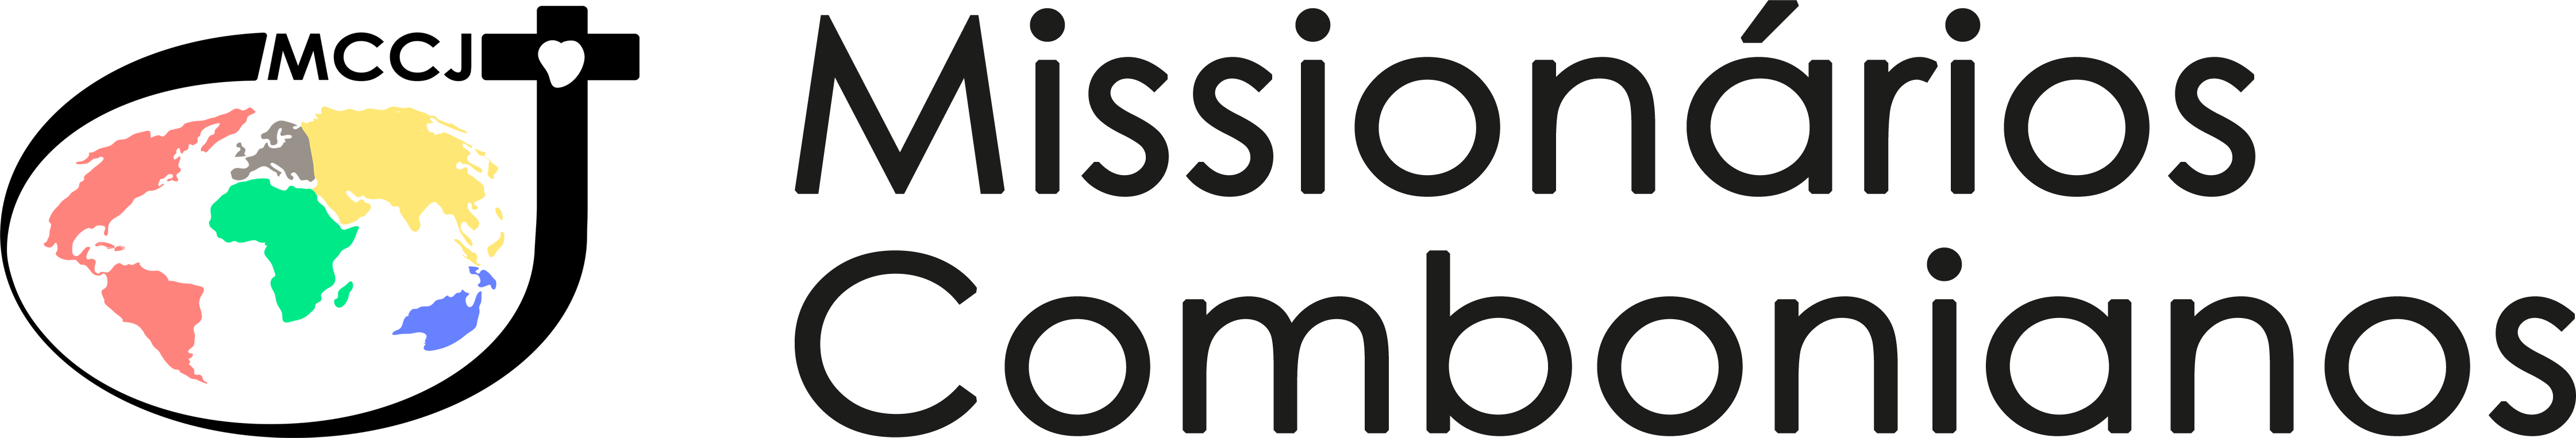 logo-combonianos-color.png